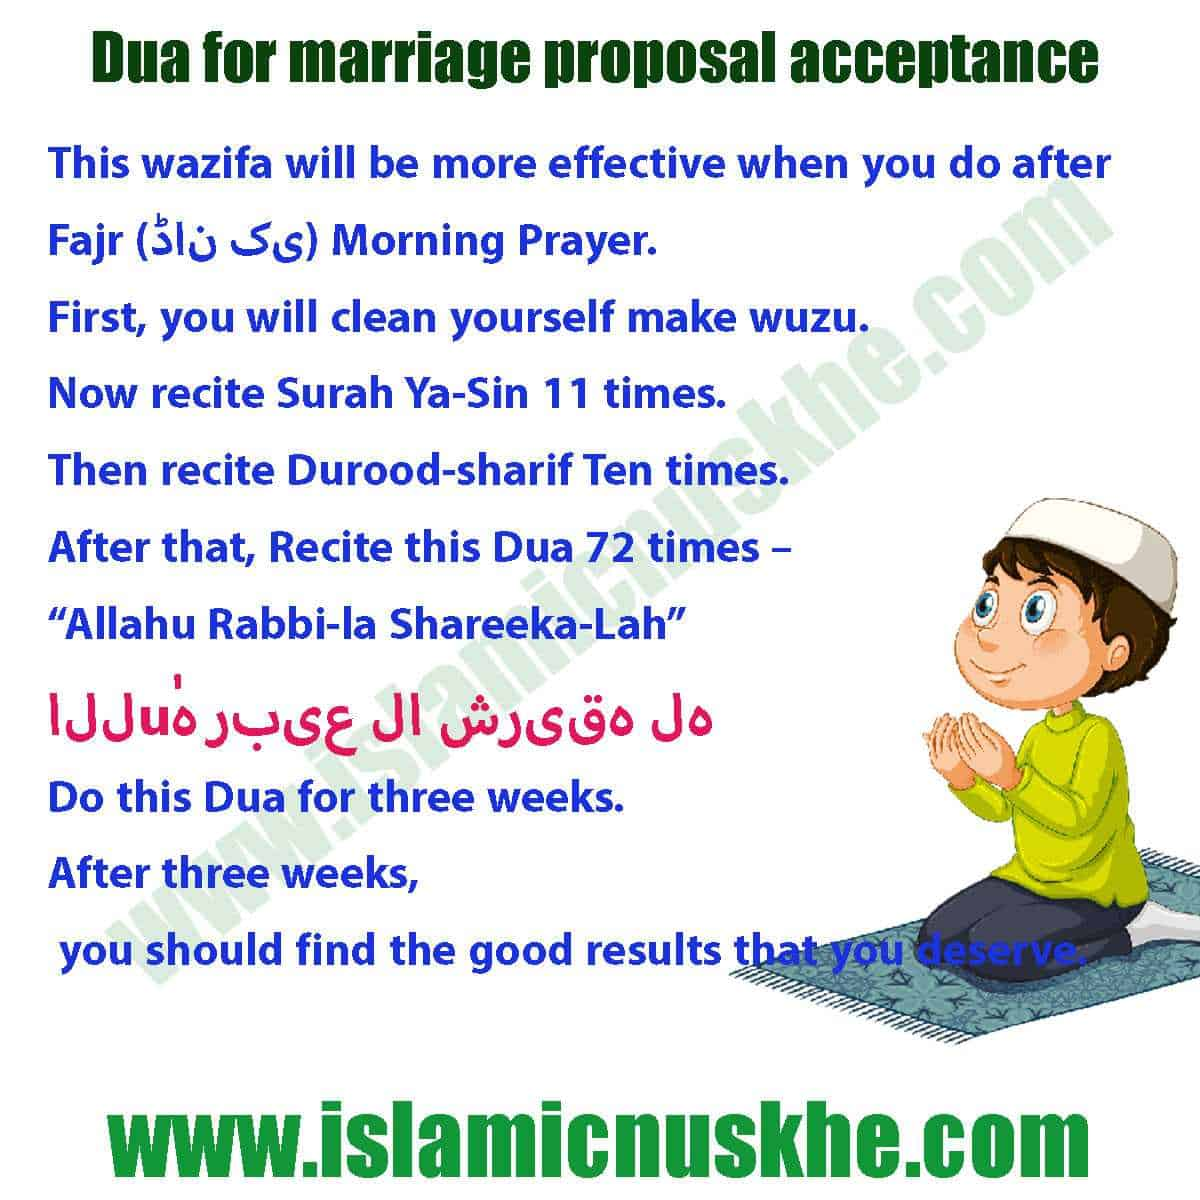 Here is Dua for marriage proposal acceptance Step by step